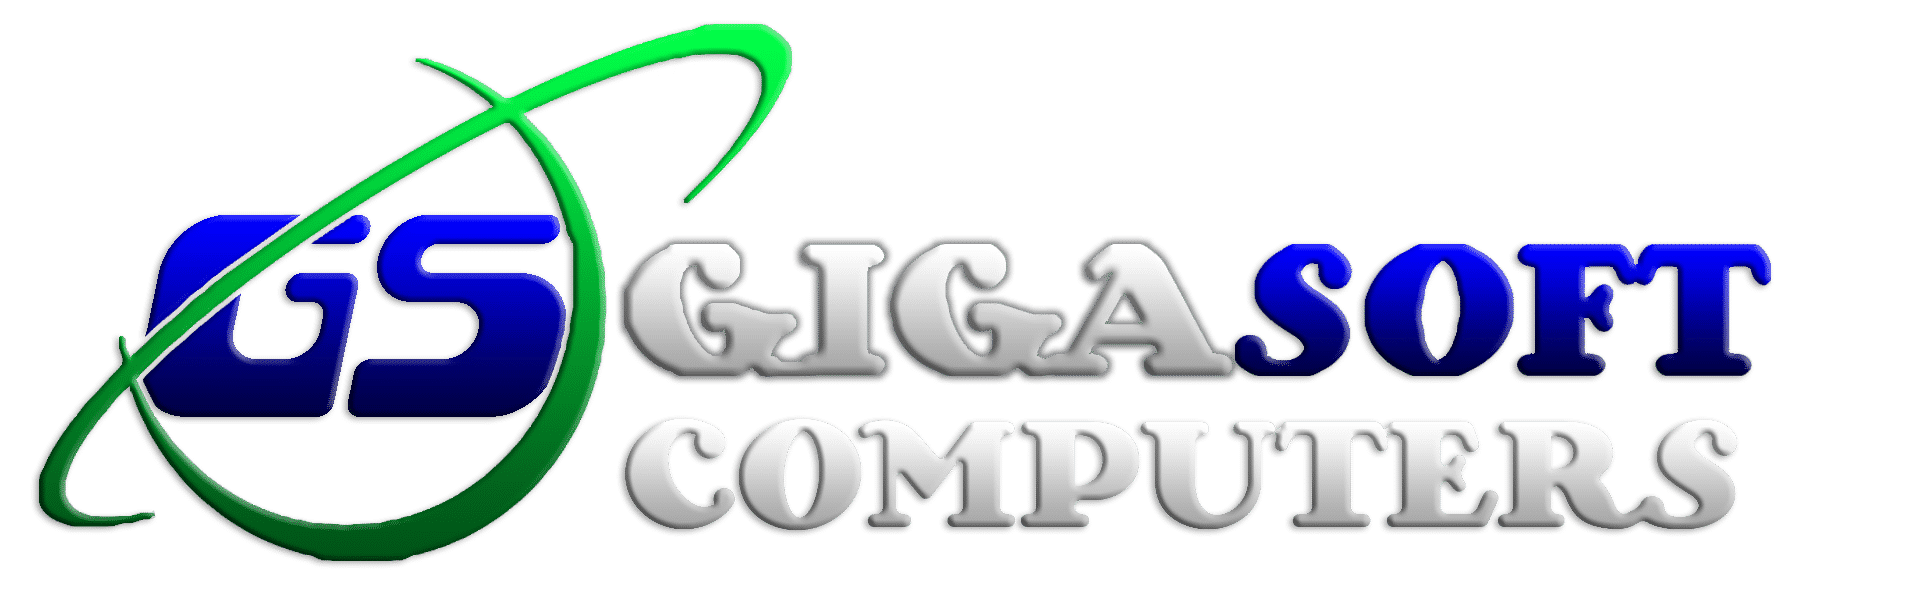 Gigasoft Computers